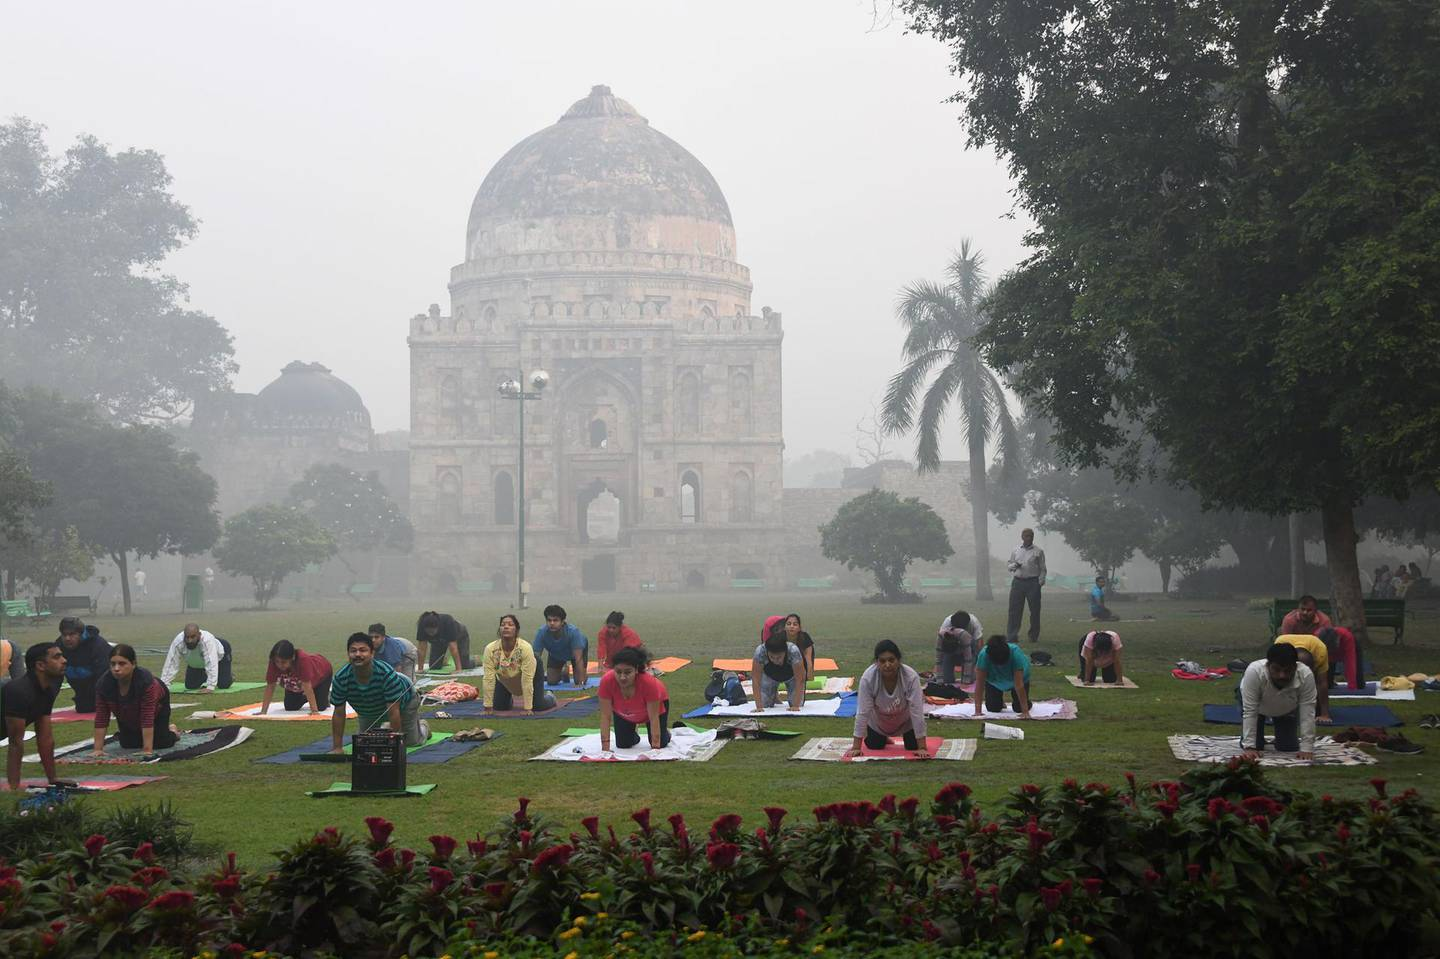 (FILES) In this file photo taken on October 30, 2018 Indian yoga enthusiasts practice yoga in Lodhi Gardens amid heavy smog conditions in New Delhi. Residents of the Indian capital New Delhi lose on average ten years off their life expectancy due to the catastrophic effect of the city's air pollution, compared to their expected life longevity if they were breathing healthy air, according to a study published by the University of Chicago on November 19. / AFP / Dominique FAGET